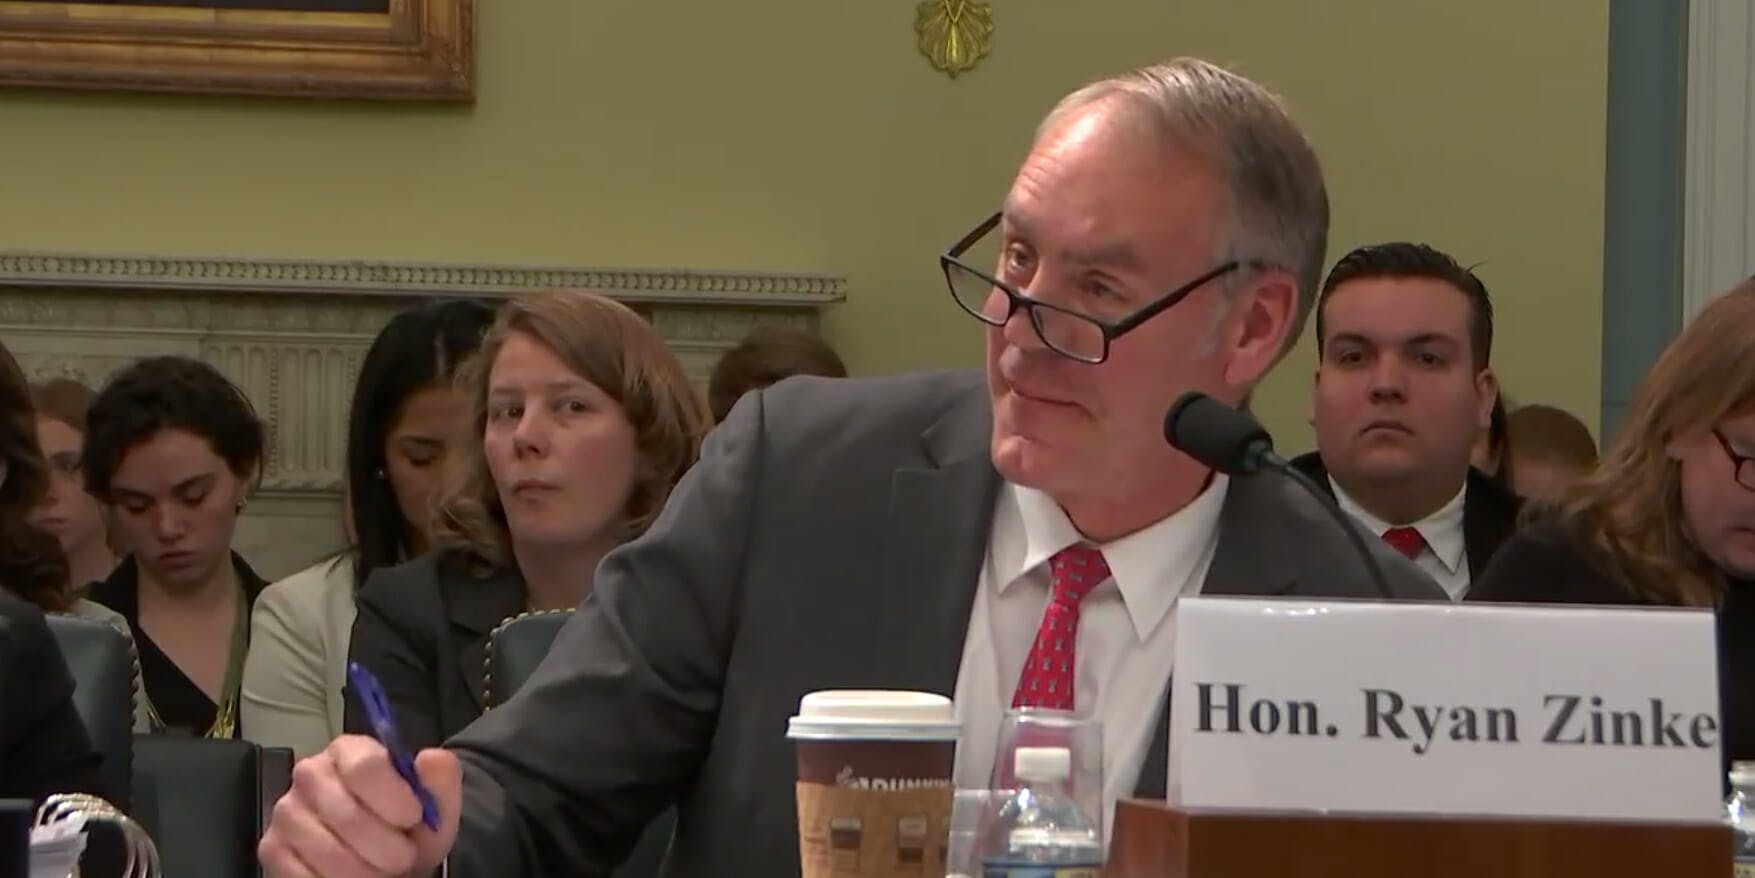 Interior Secretary Ryan Zinke is being criticized for making a racist comment when speaking with a Hawaiian lawmaker.